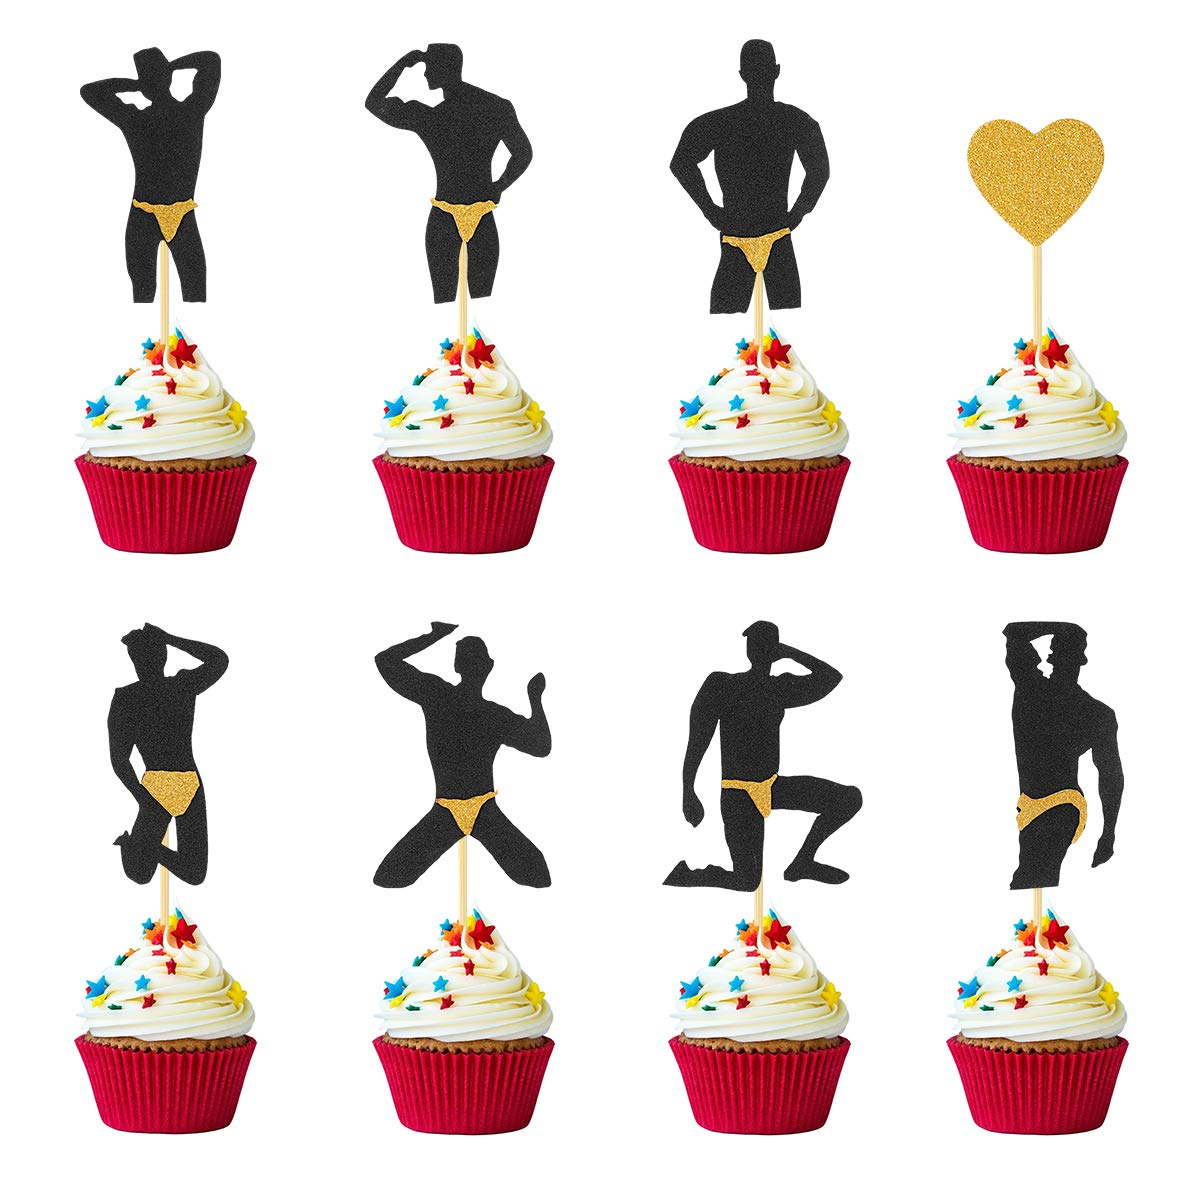 Bachelorette Cupcake Toppers - 40 Pcs(8 Styles) - Gold Glitter Male Dancers Strippers Cupcake Toppers - Great for Bachelorette Party Bridal Shower Hen Party Decorations